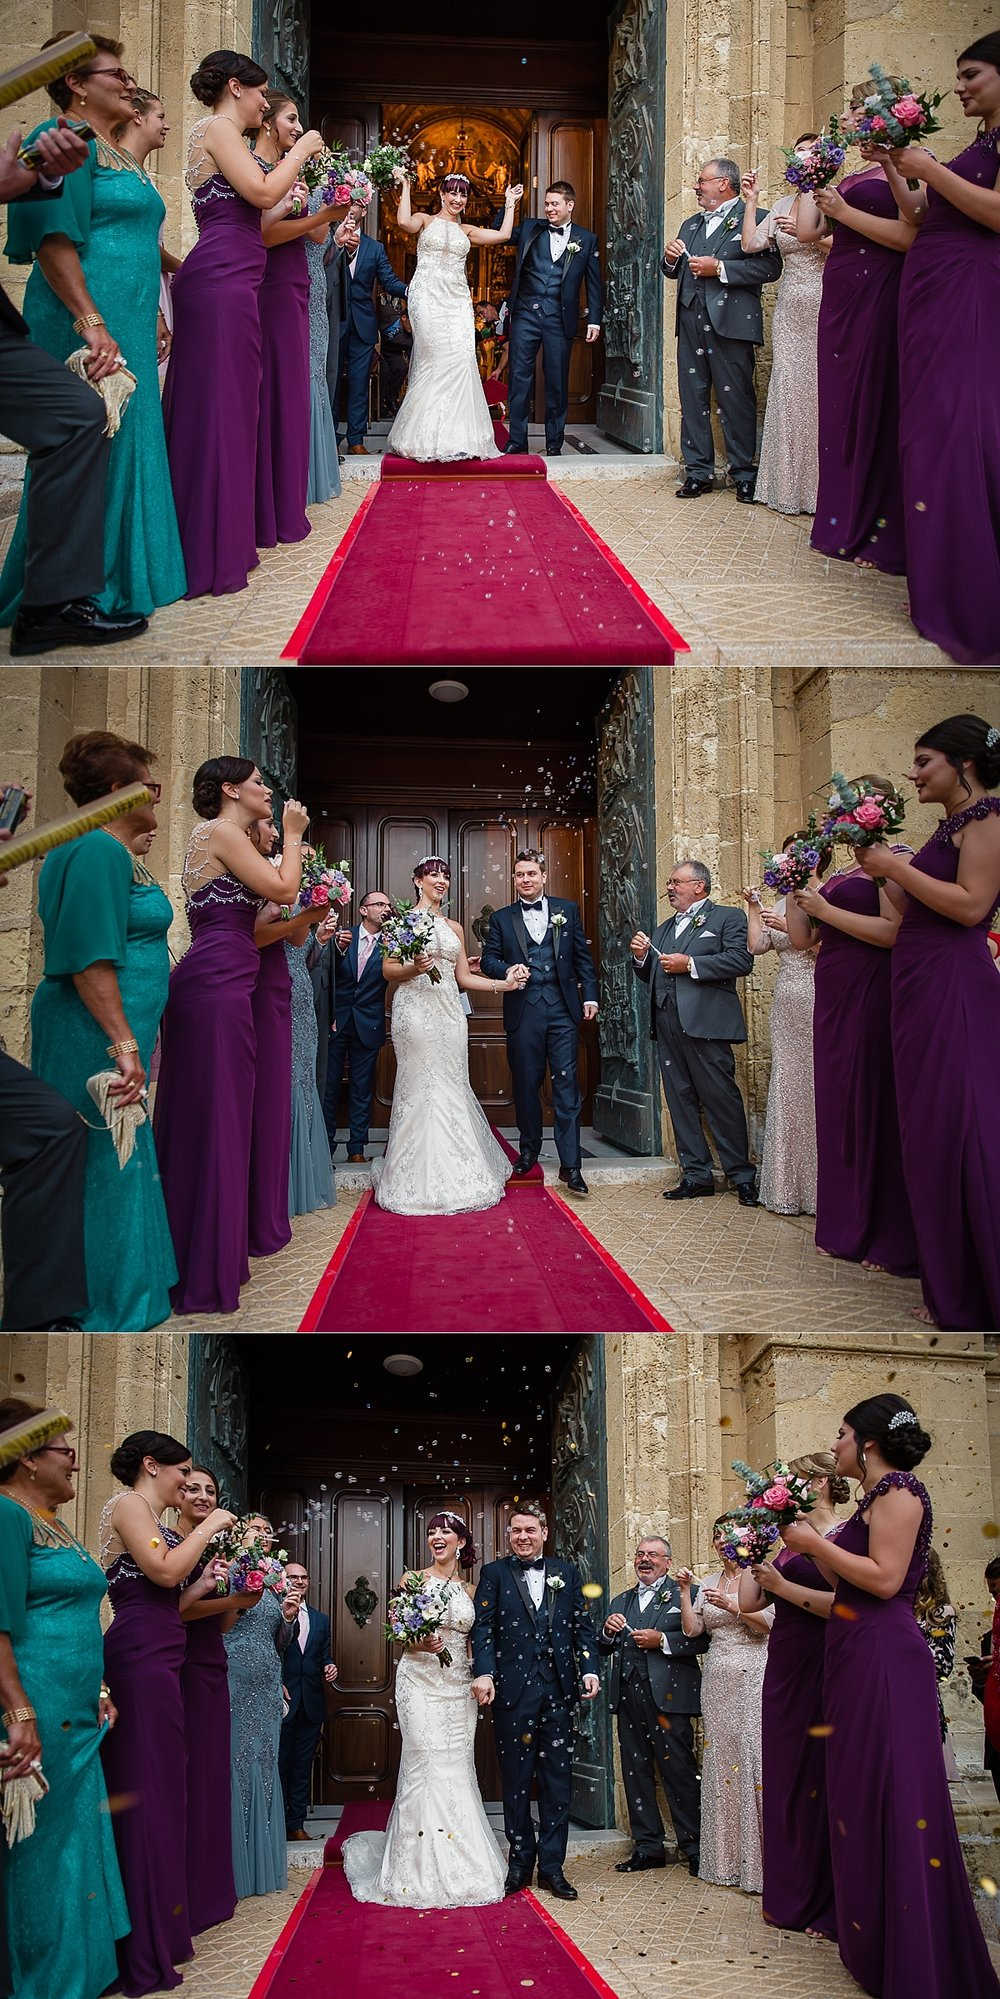 Adreana & Andrew - Ta Frenc - Gozo Wedding - Shane P. Watts Photography